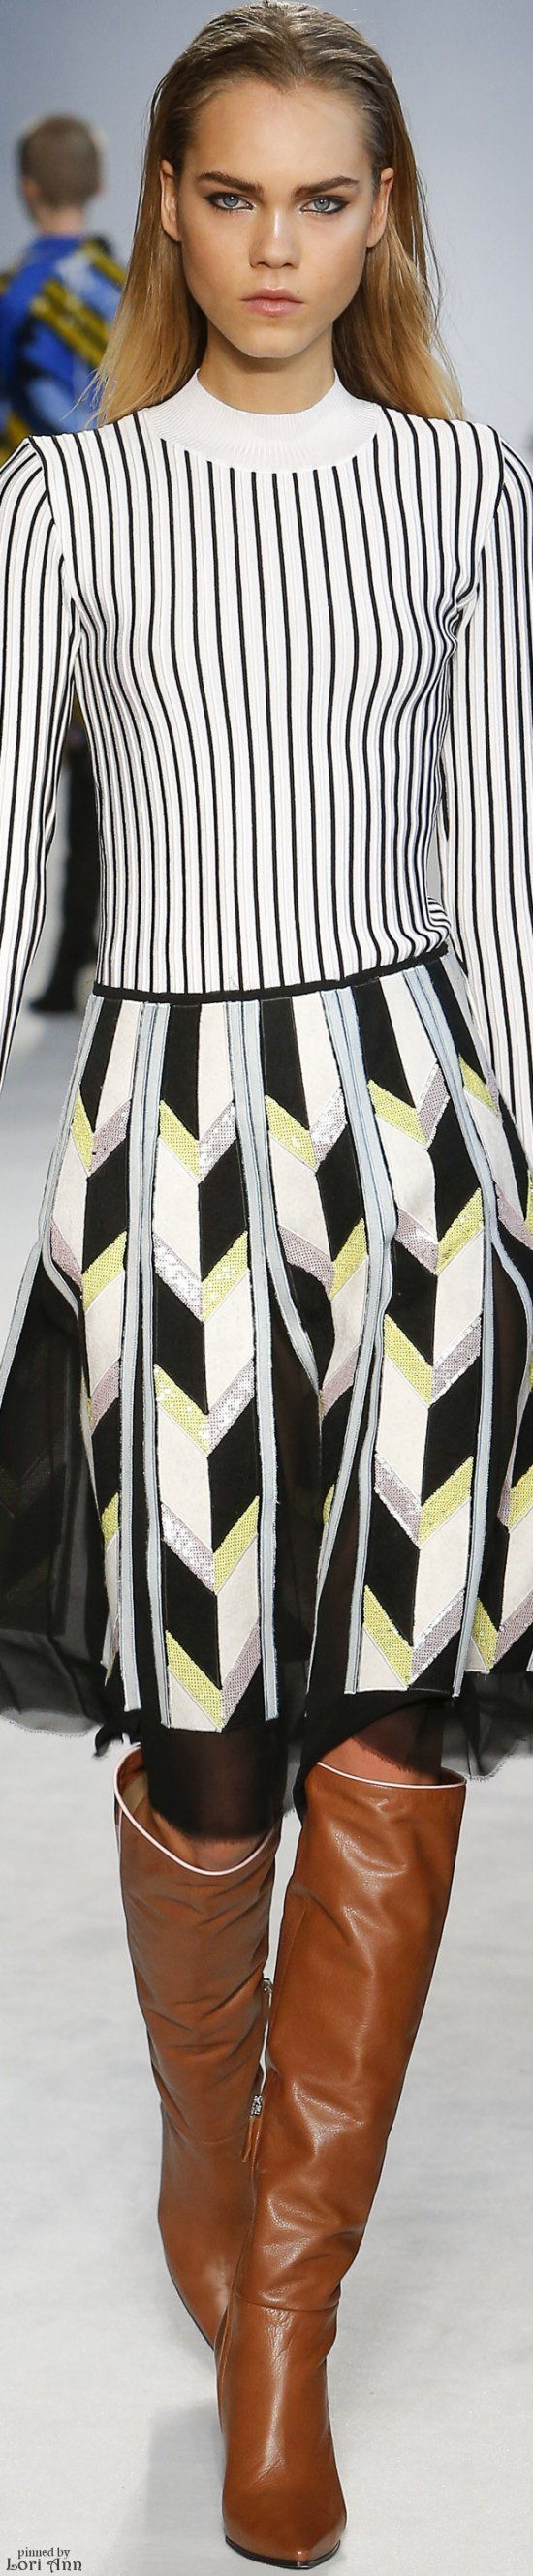 Emilio Pucci F-16 RTW: striped top, patterned skirt with sequins.